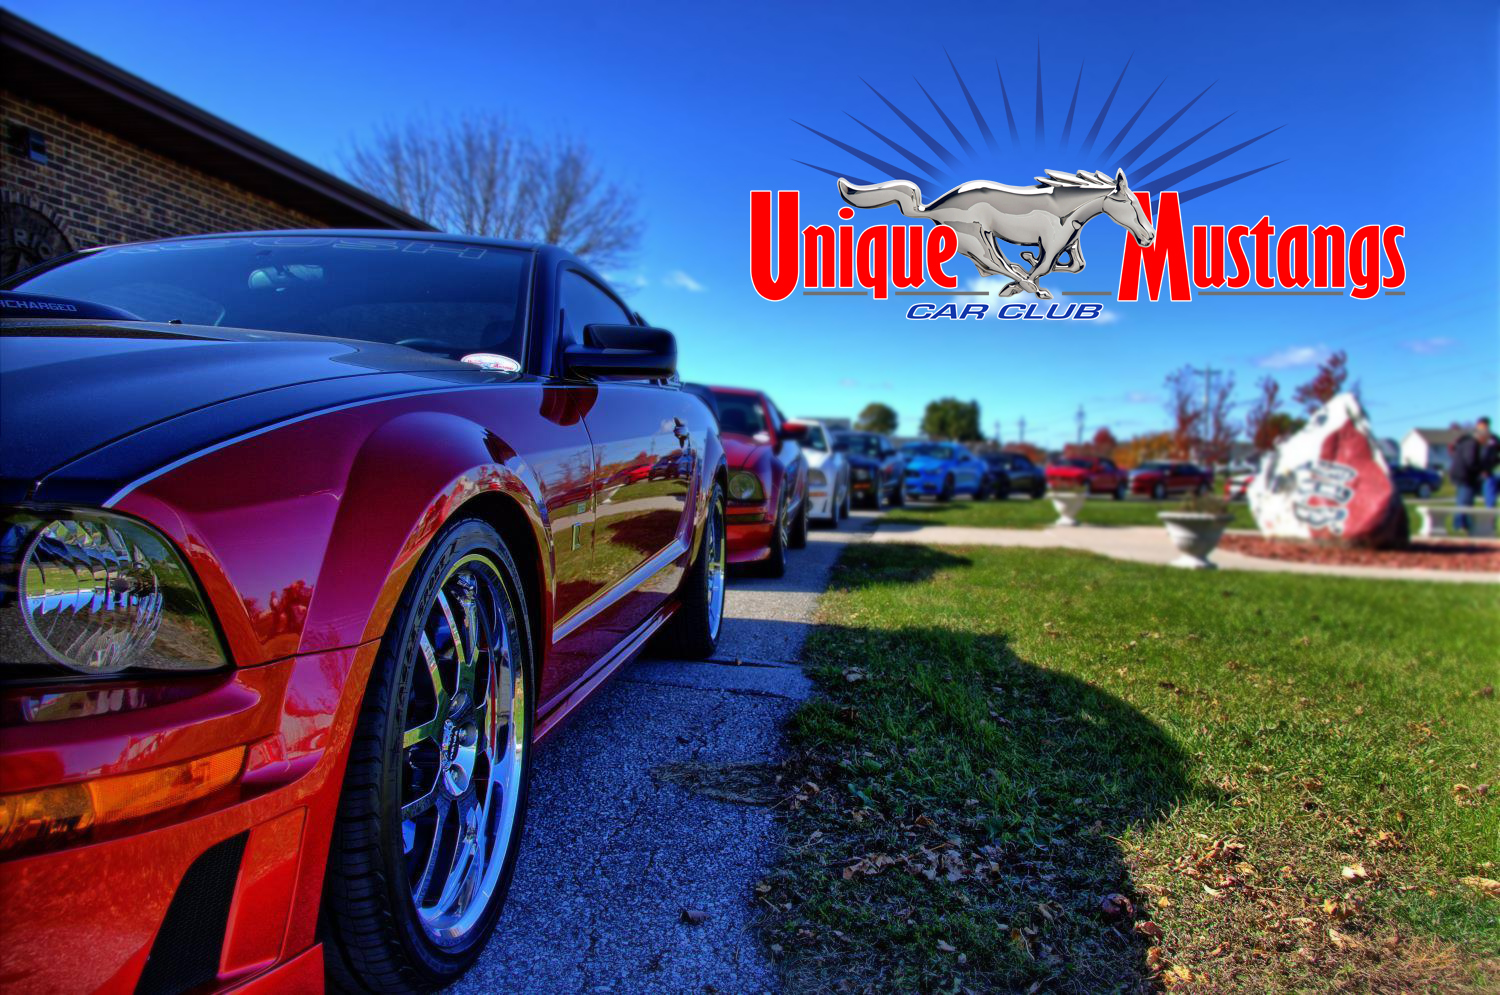 Unique Mustangs Car Club